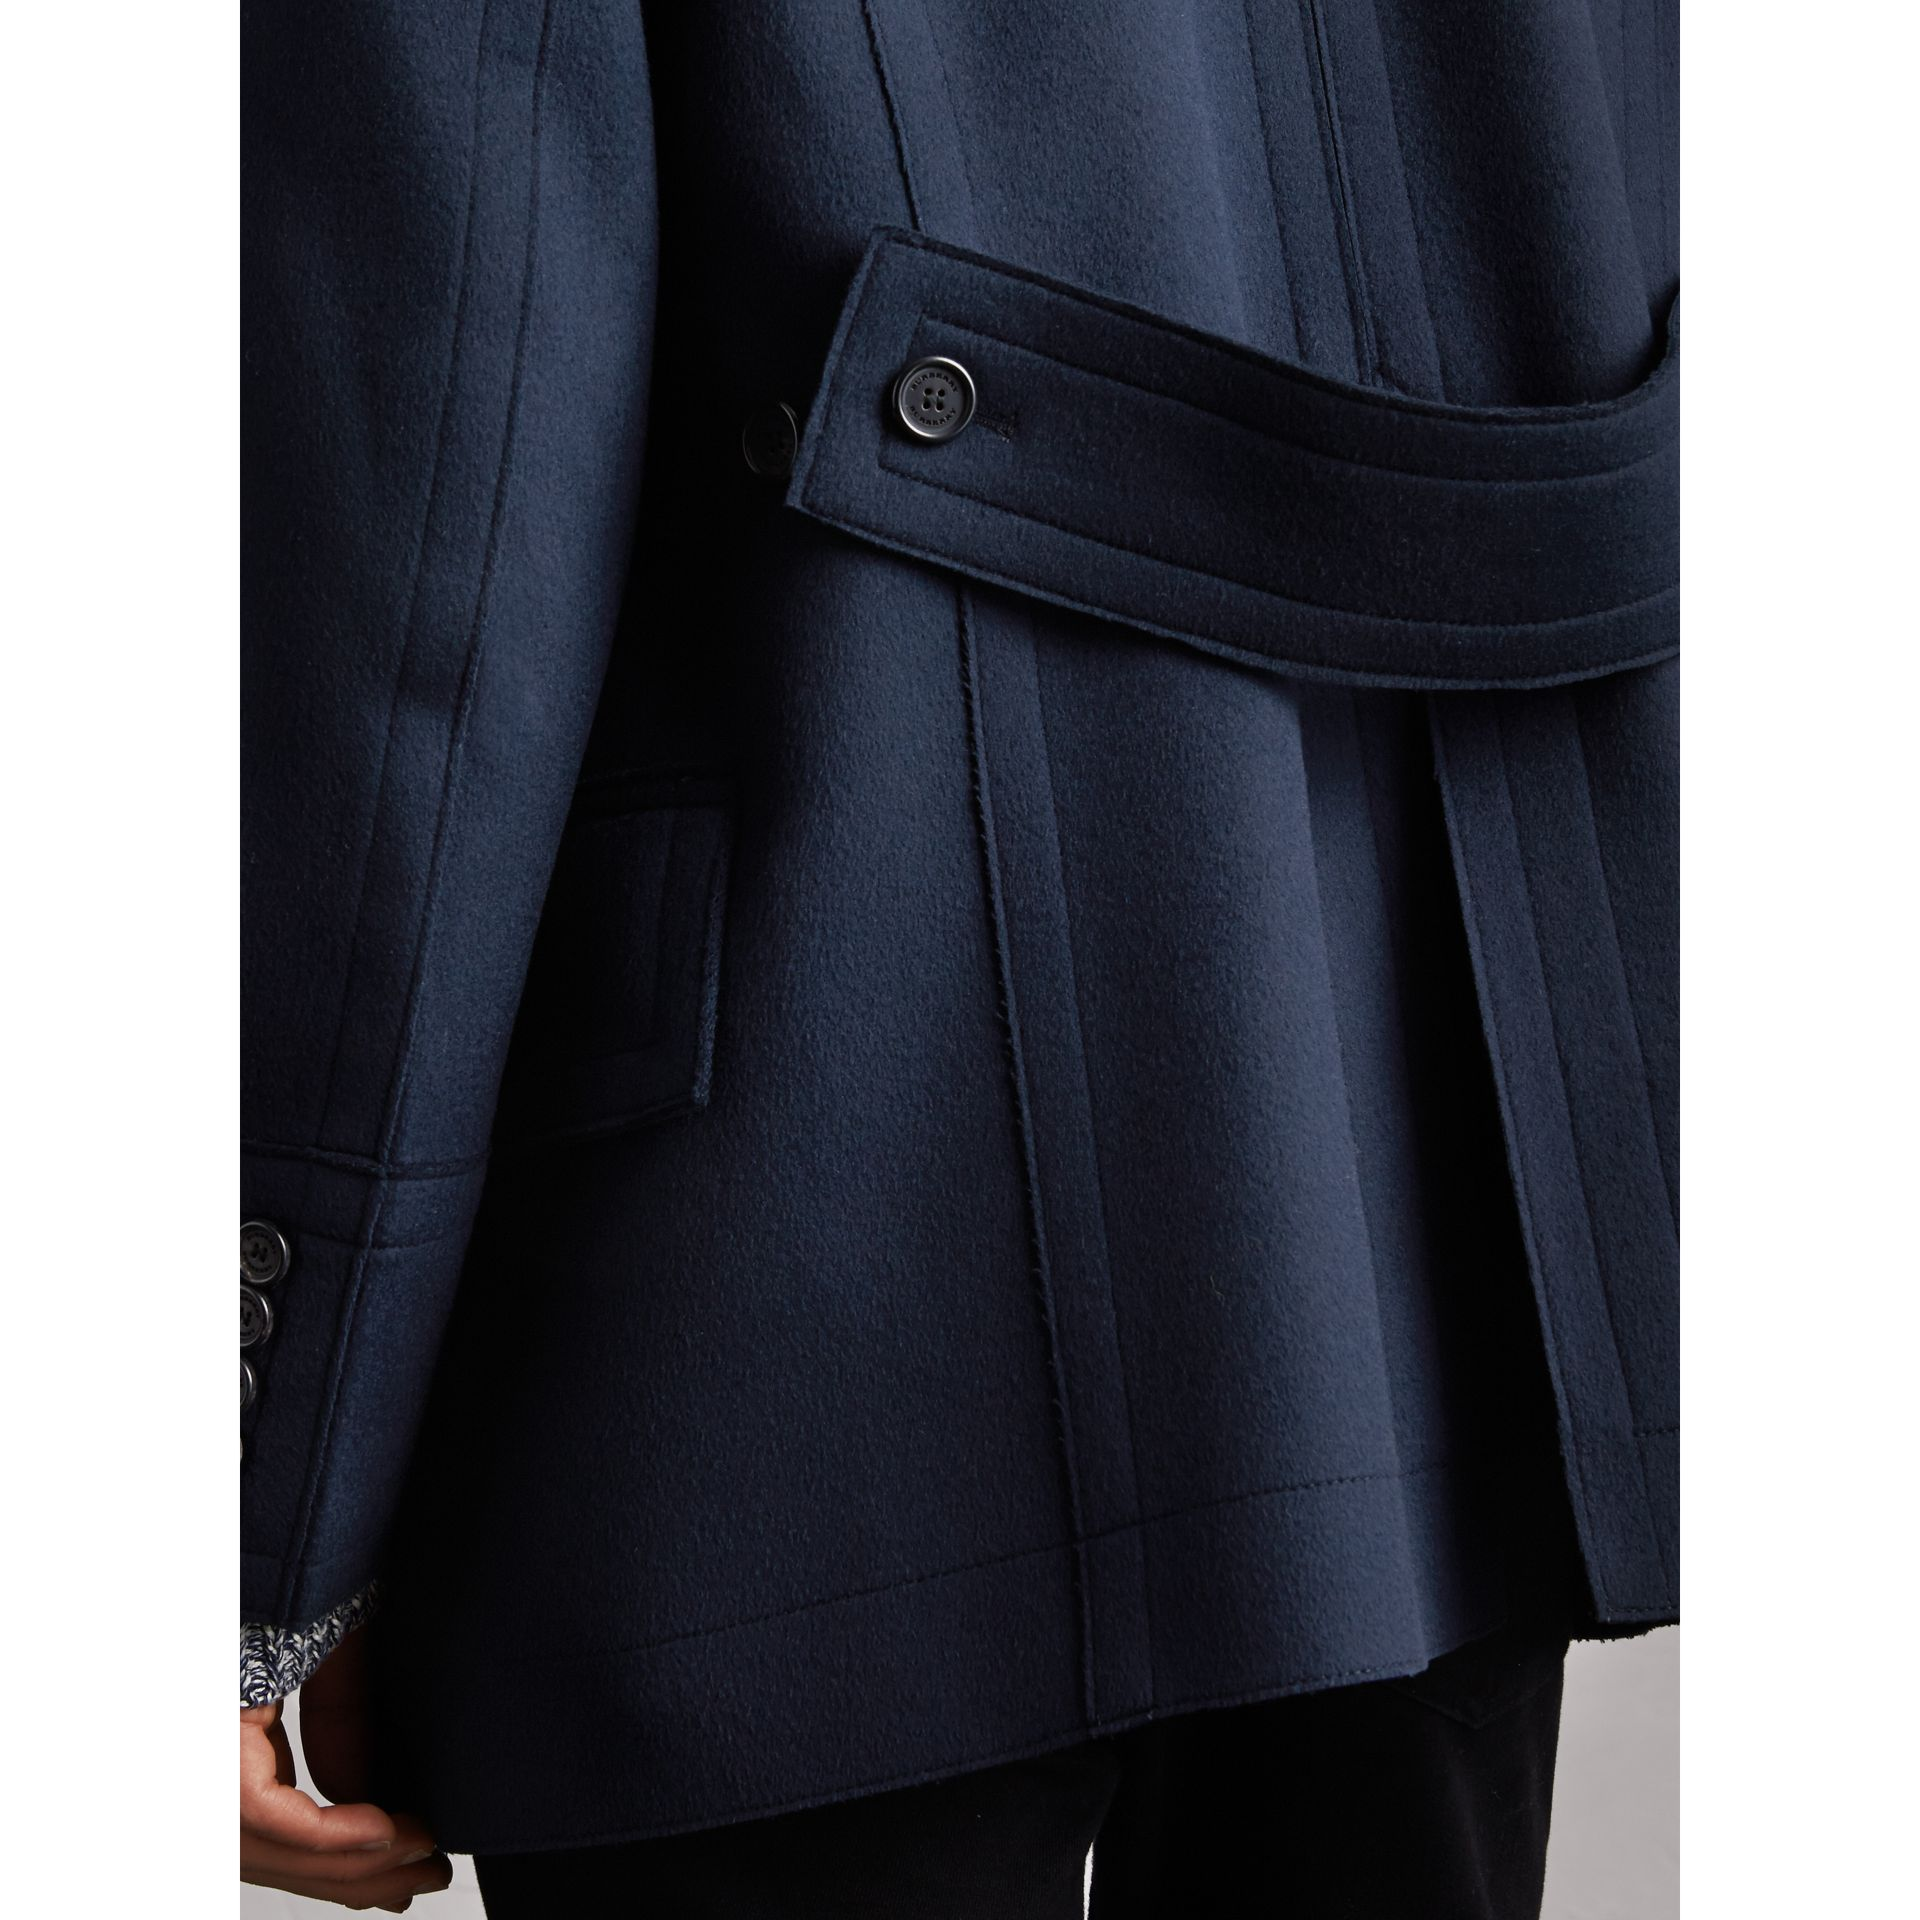 Resin Button Wool Pea Coat in Military Navy - Men | Burberry - gallery image 5